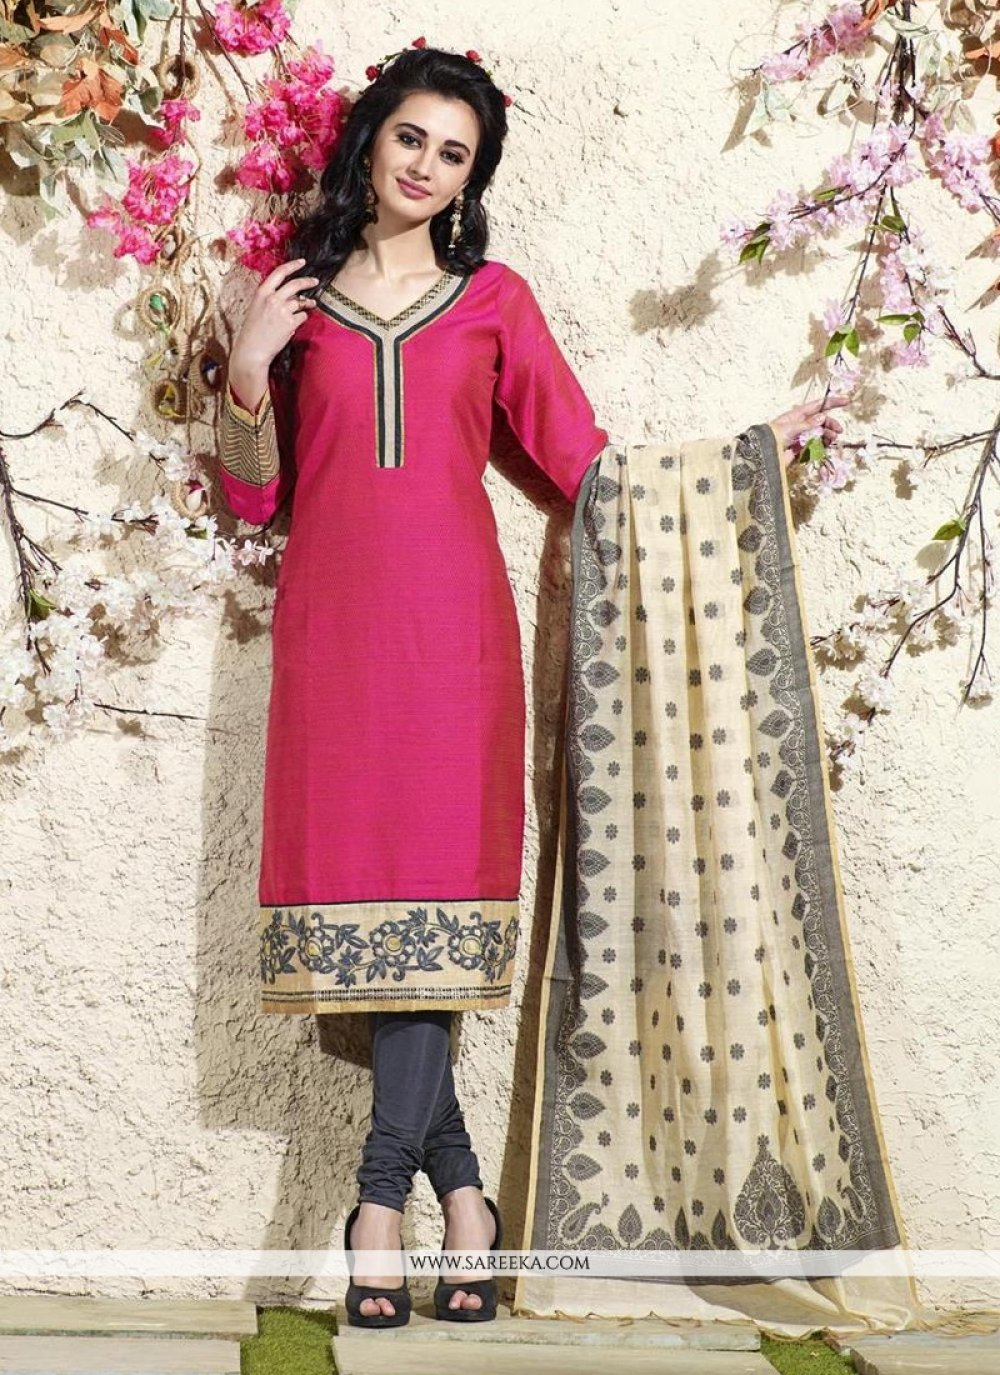 Lace Work Hot Pink Readymade Suit